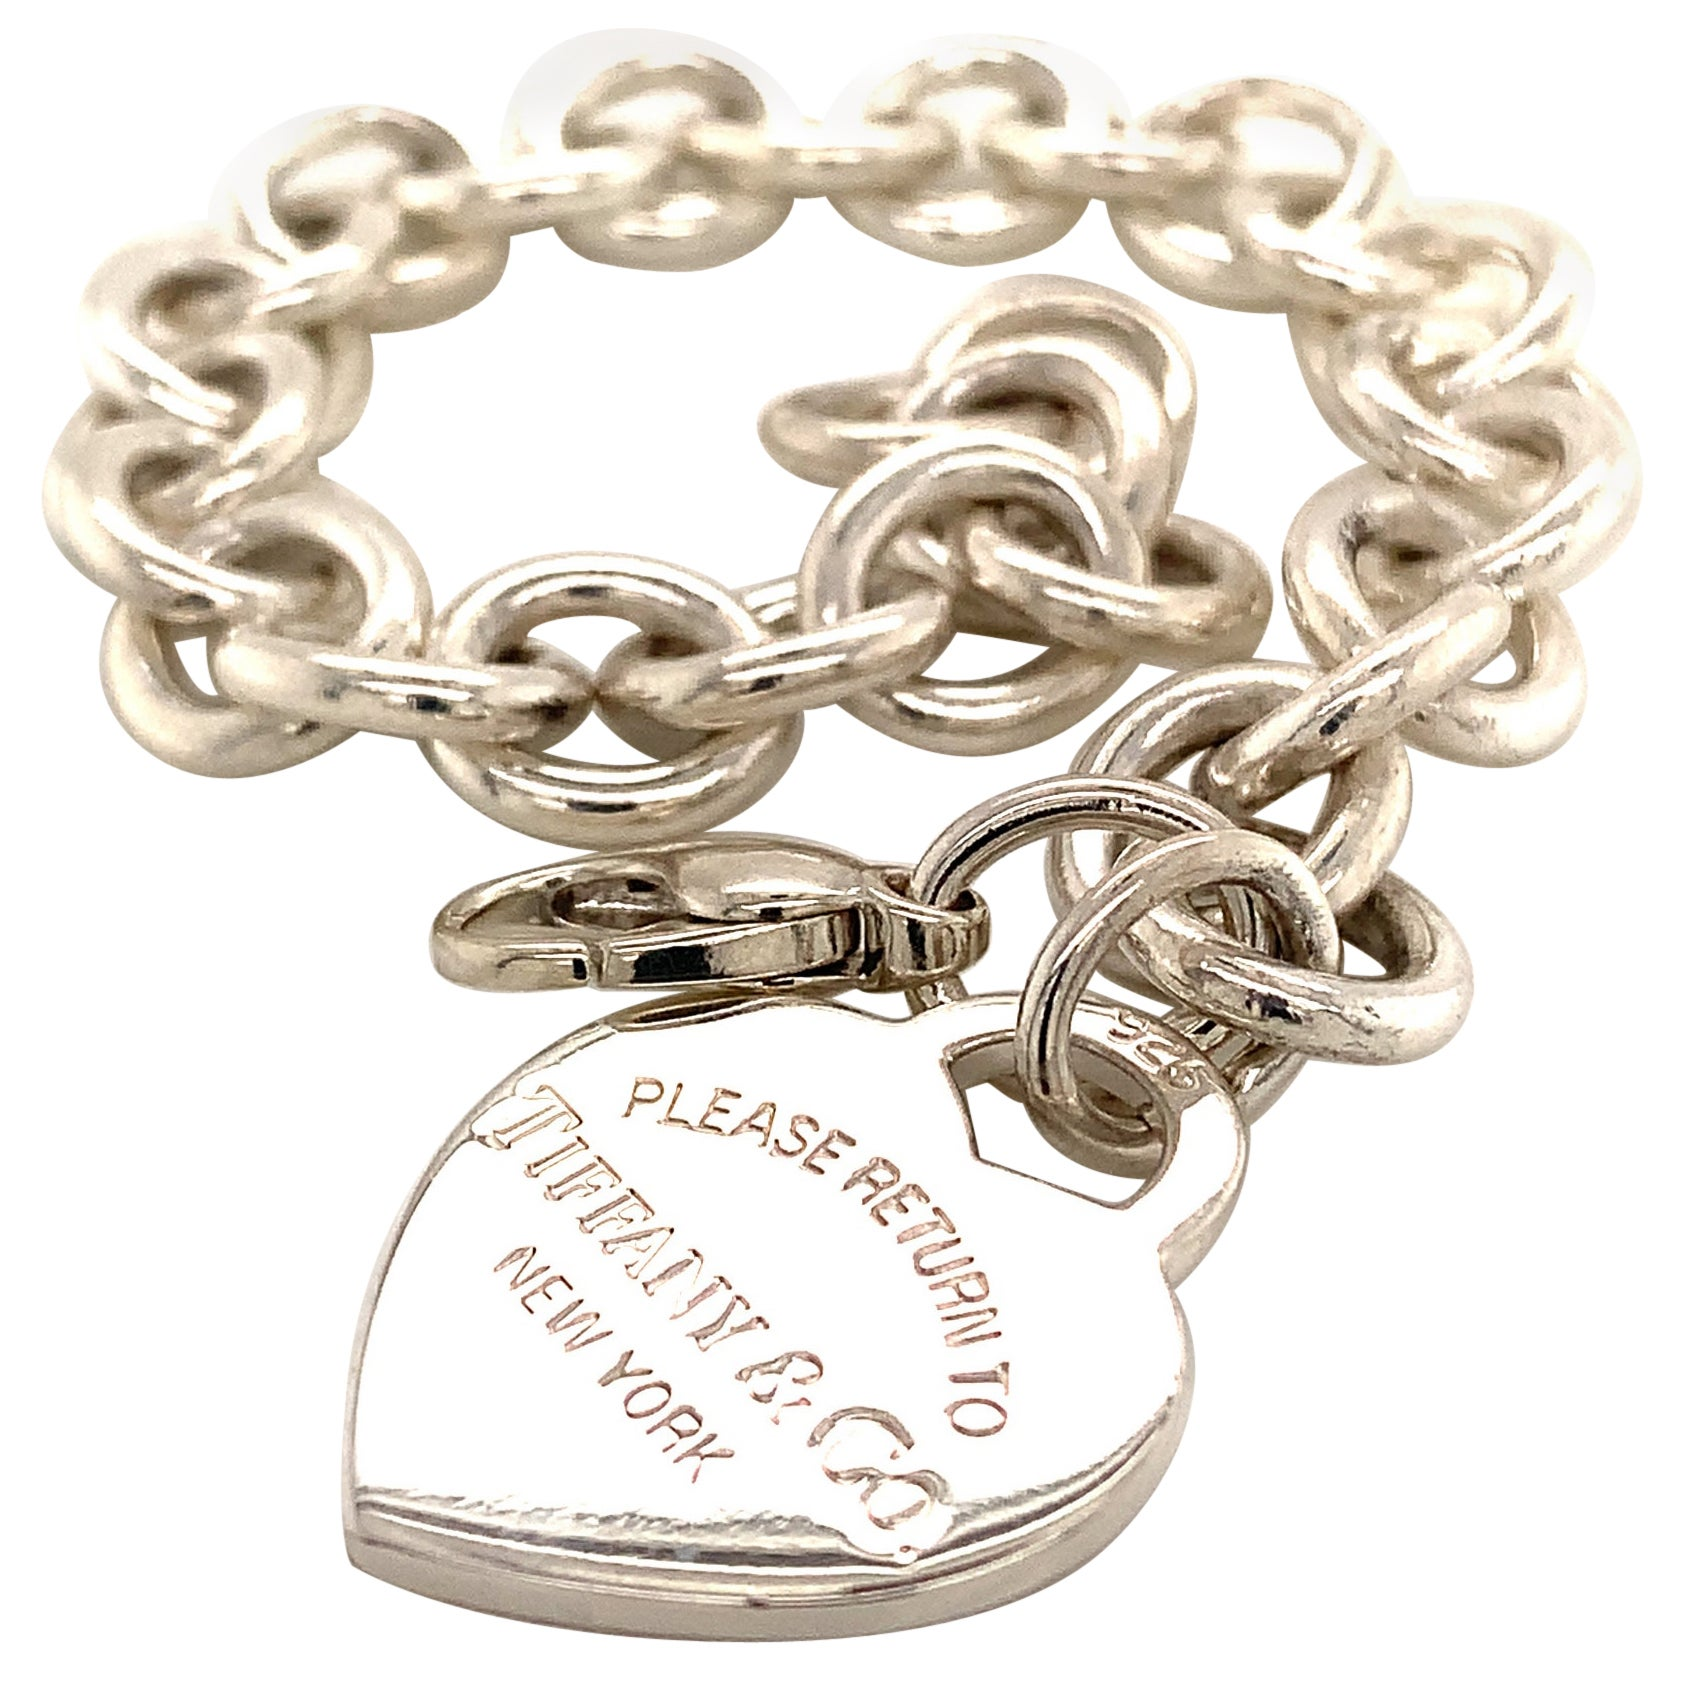 Tiffany & Co. Estate Bracelet with Heart Charm Sterling Silver 36g